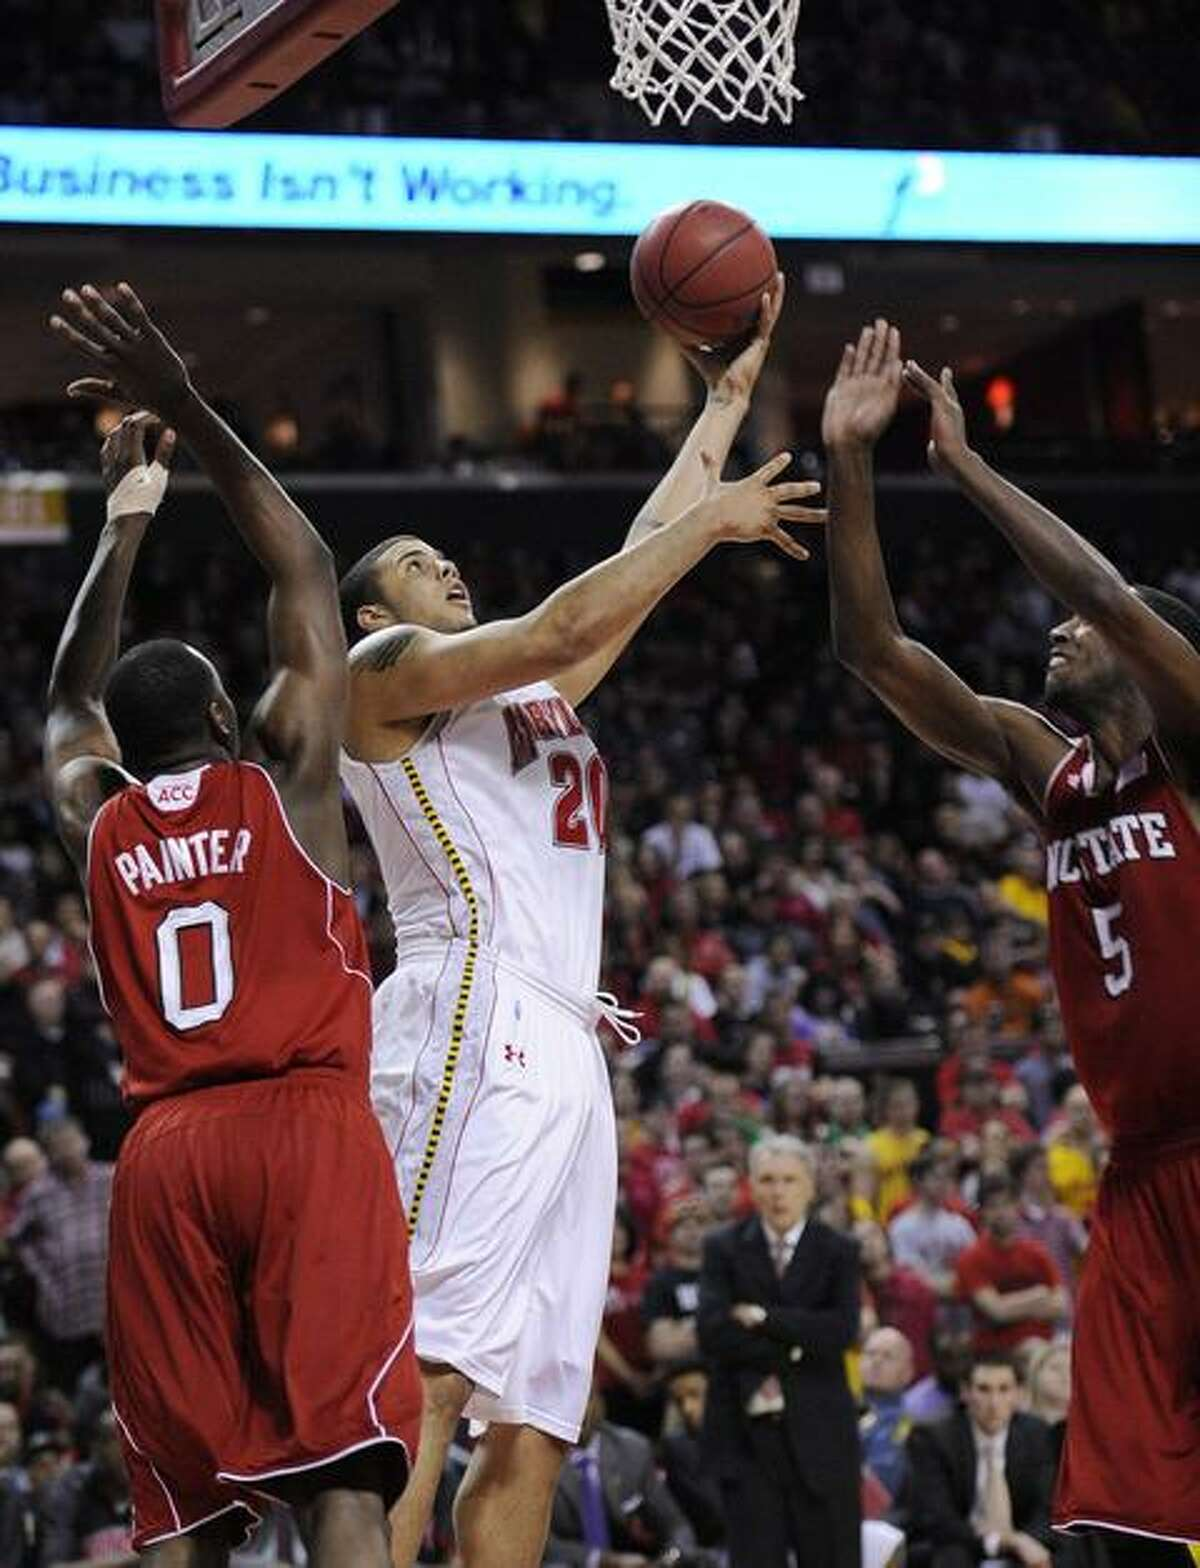 Maryland forward Jordan Williams, center, goes to the basket against North Carolina State's DeShawn Painter (0) and C.J. Leslie (5) during the second half of an NCAA college basketball game, Sunday, Feb. 20, 2011, in College Park, Md. Maryland won 87-80. (AP Photo/Nick Wass)